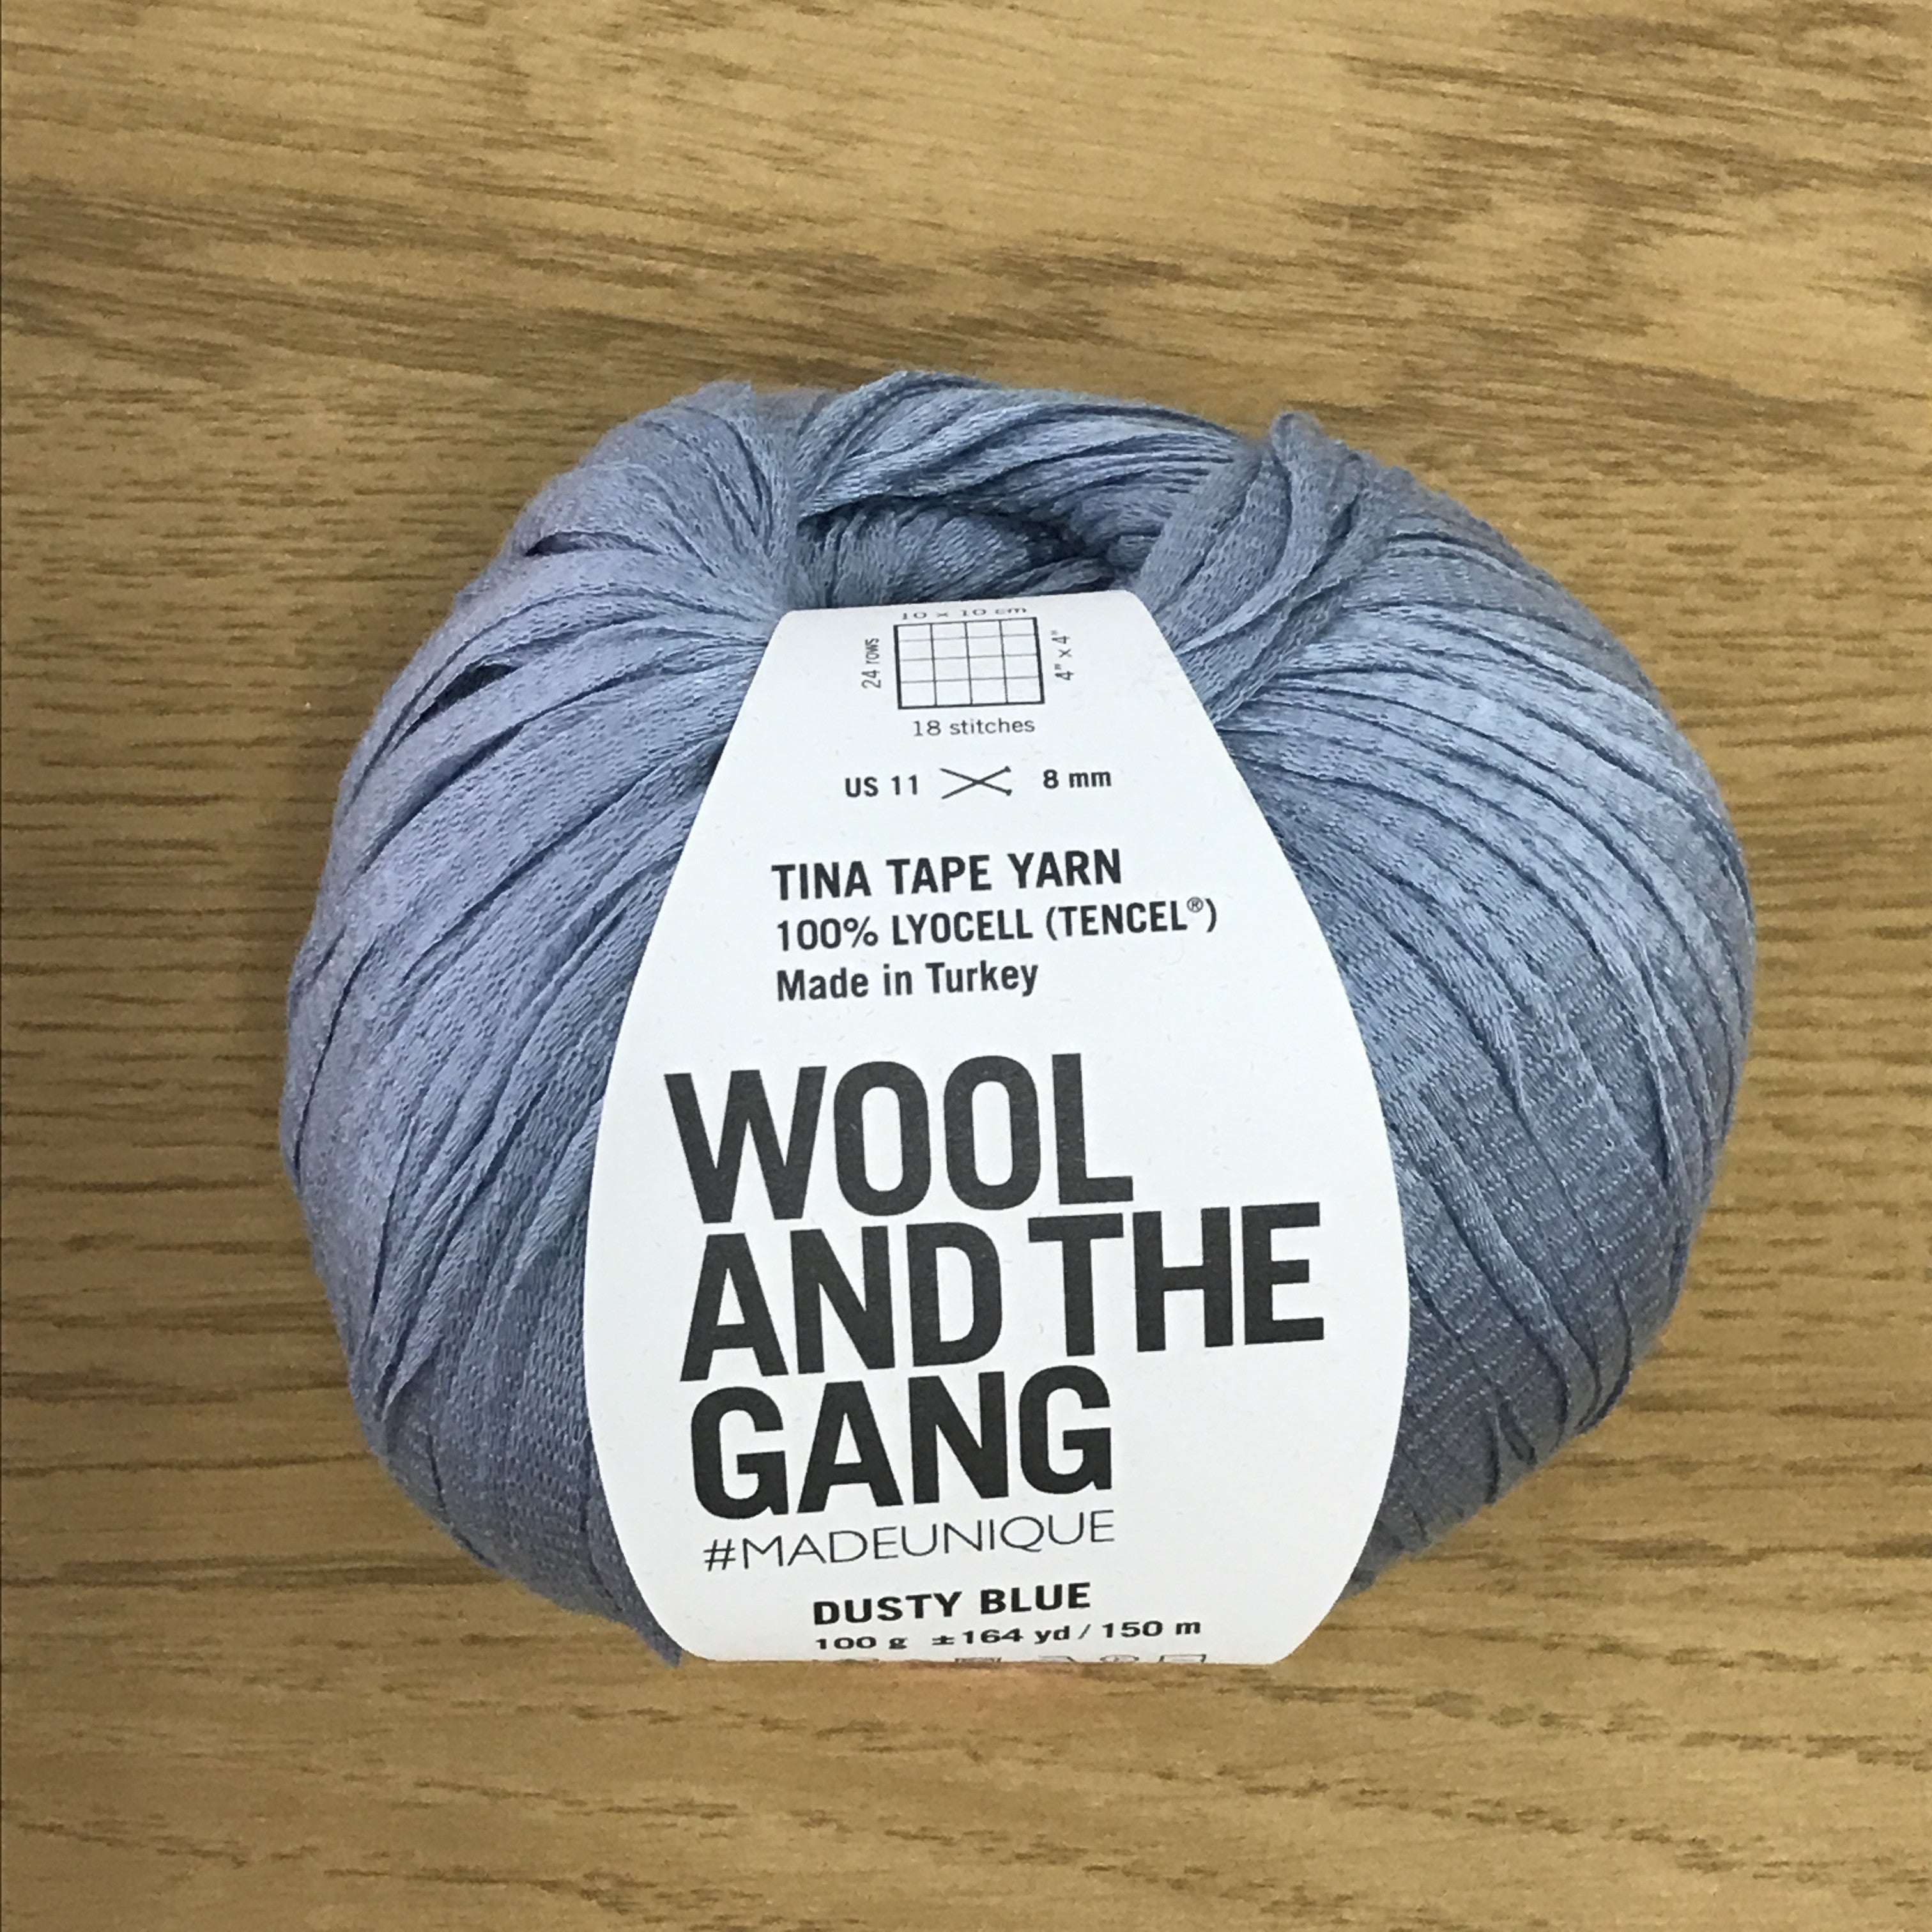 Tina Tape yarn is new from Wool and the Gang! Tencel is sourced from eucalyptus trees, vegan, and good for the environment. Softer than silk and light as air! Dusty Blue